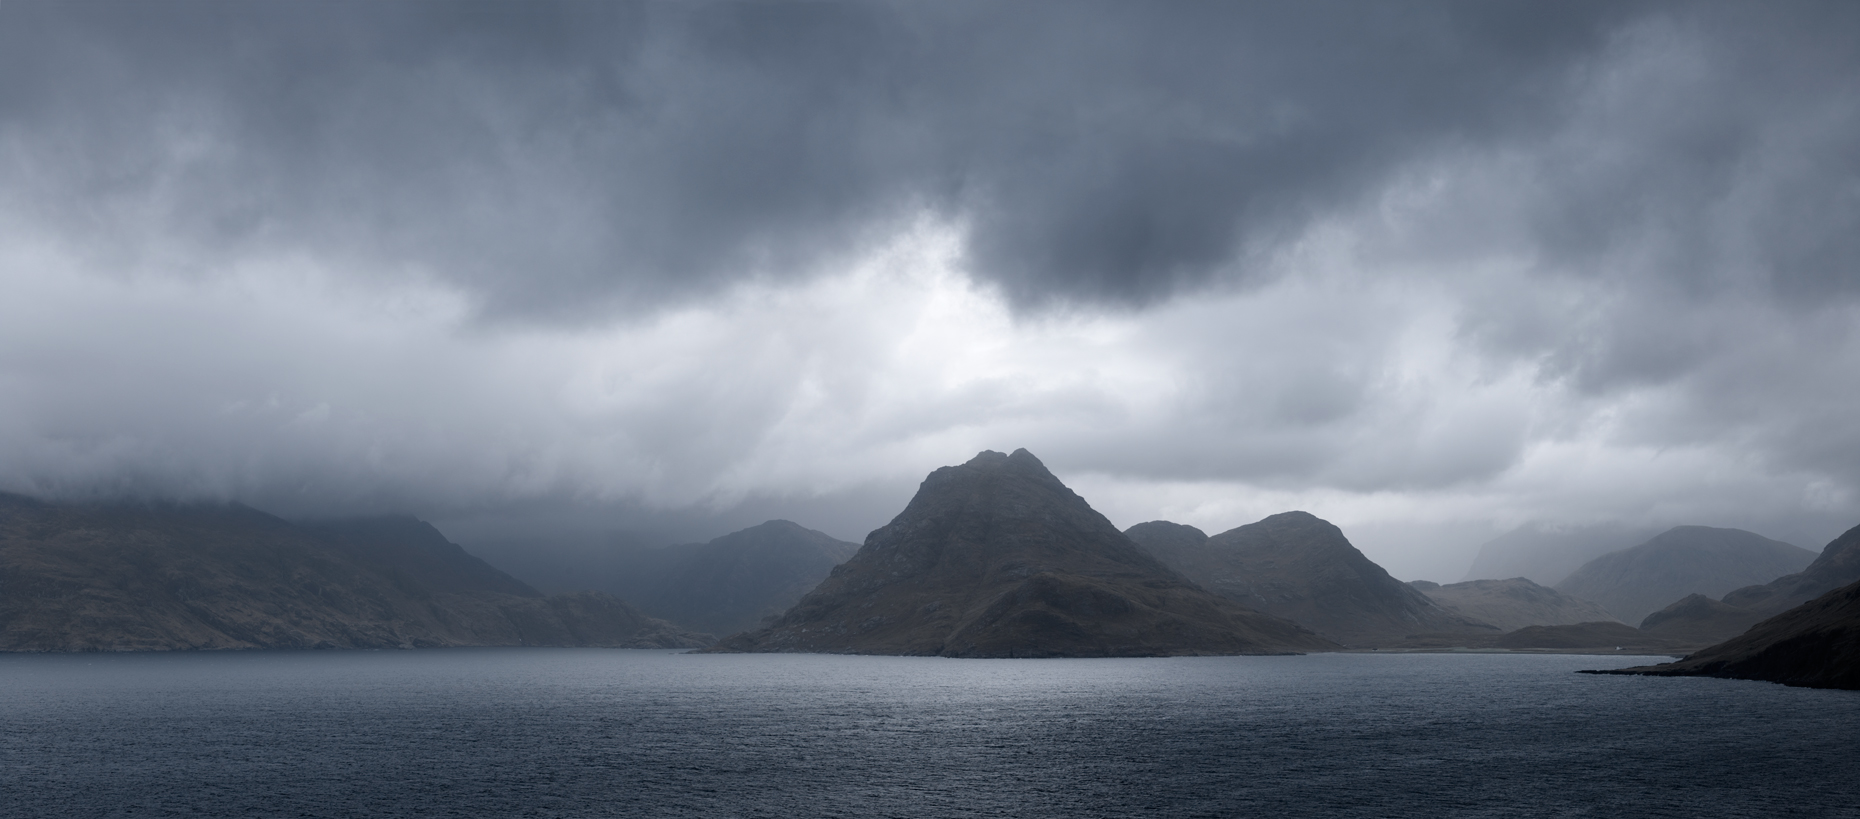 Jon Wyatt Photography - Heavy clouds over the Cuillin Mountains, Isle of Skye